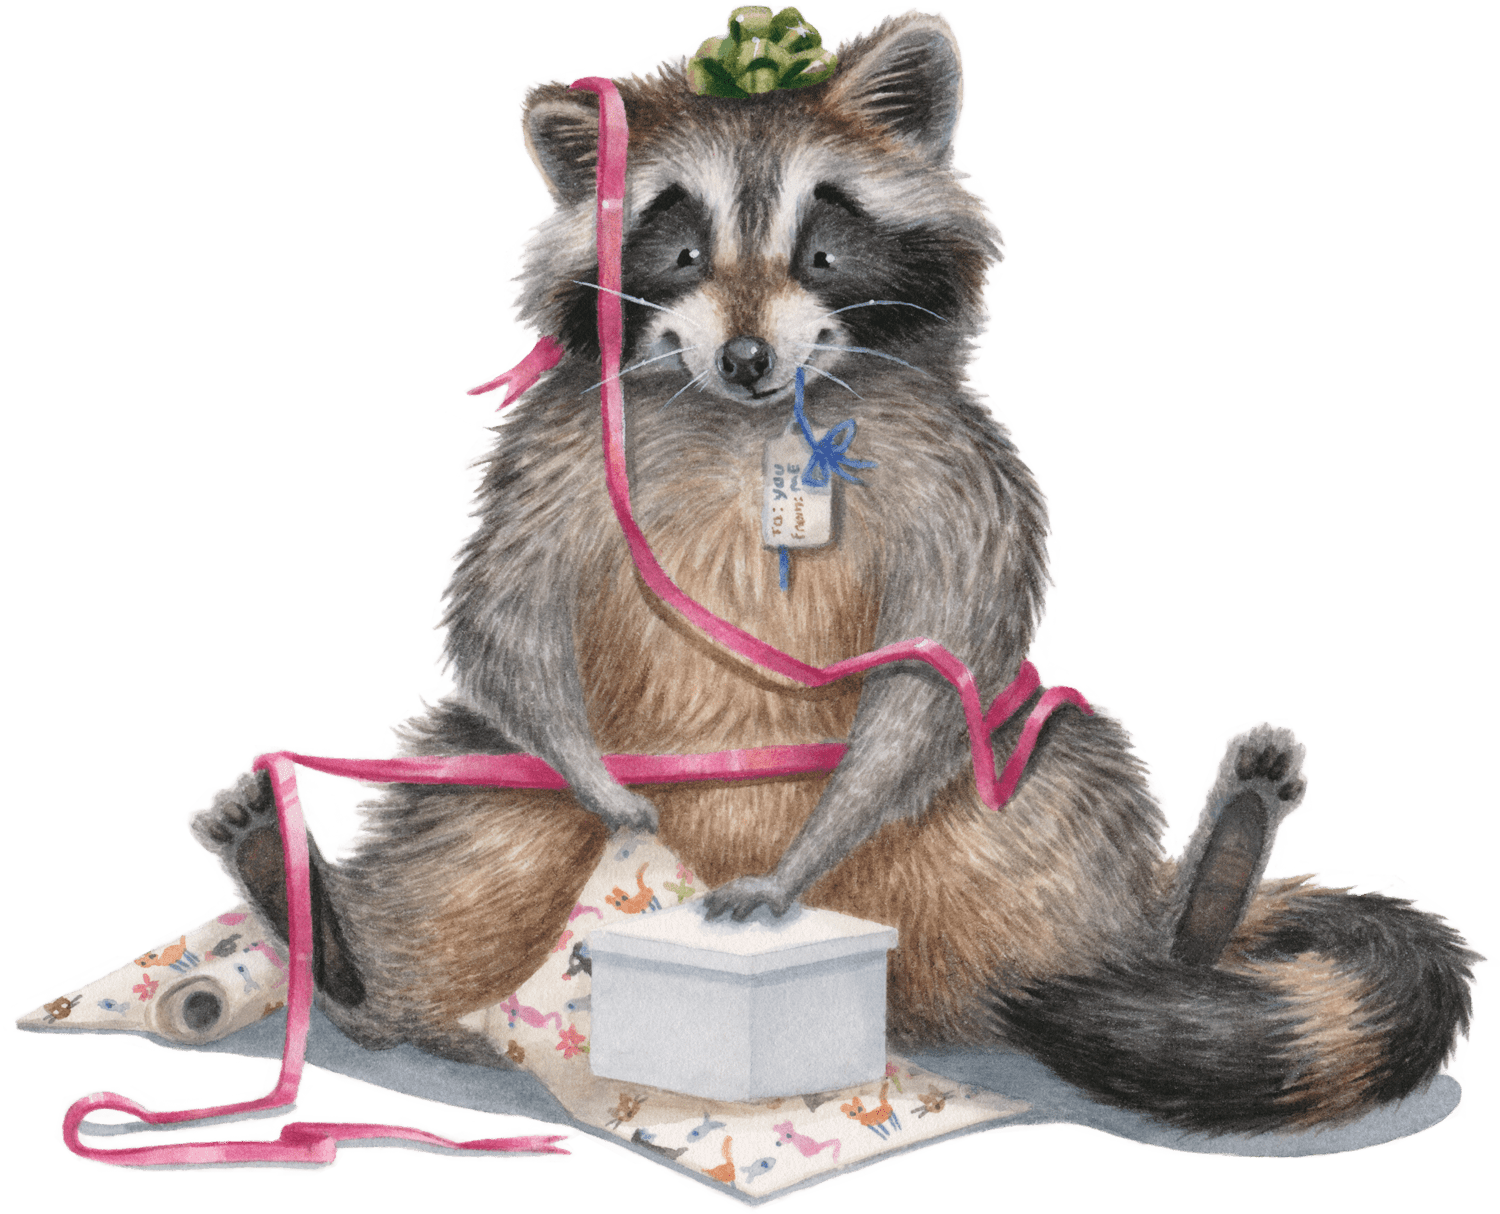 birthday-raccoon-no-border-kristin-makarius-min.png